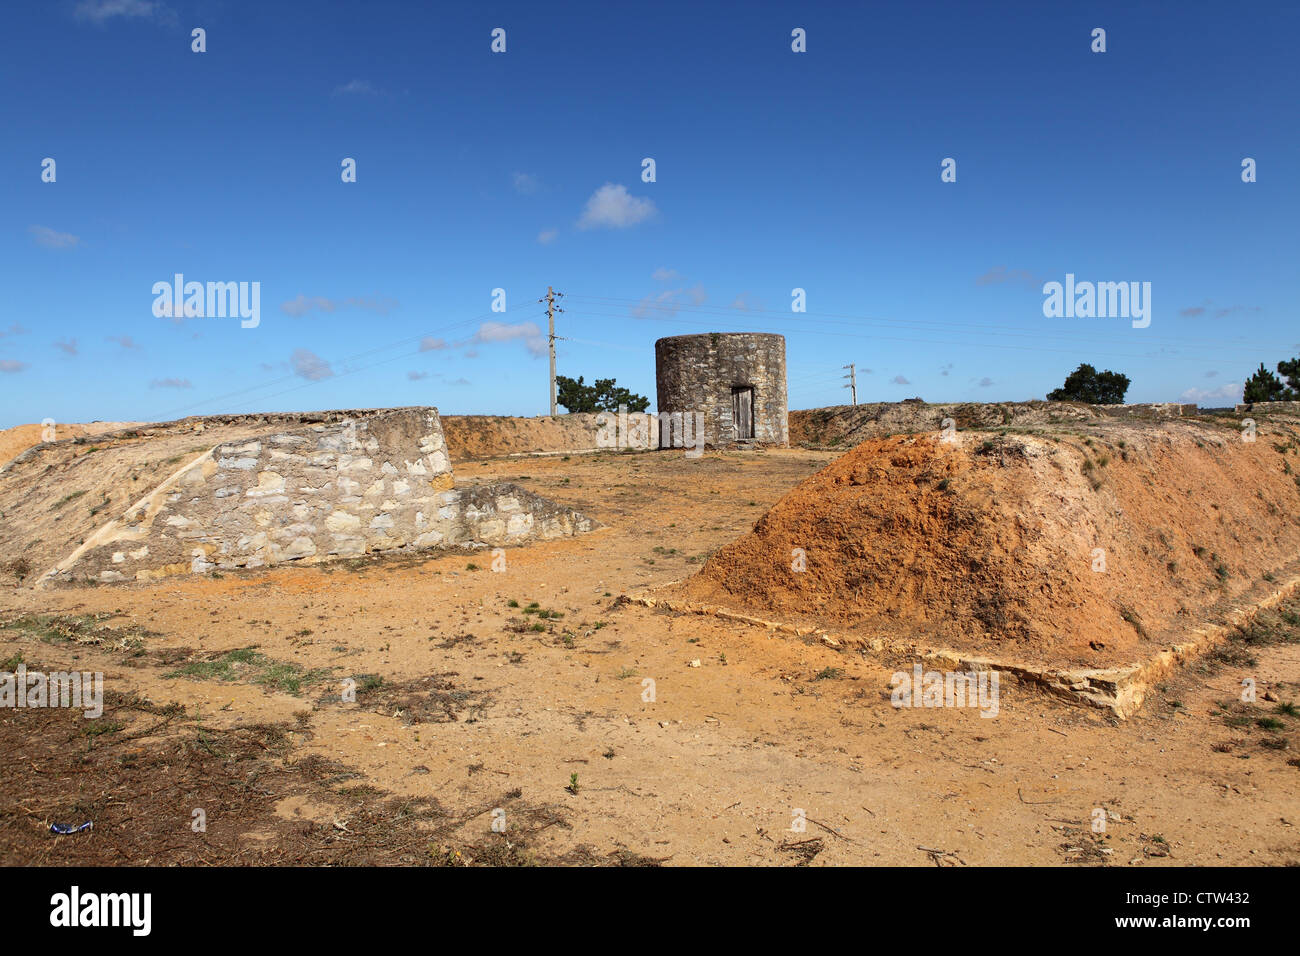 Traverses, part of the defences at Forte de Sao Vicente, one the Lines of Torres Vedras, Portugal. - Stock Image